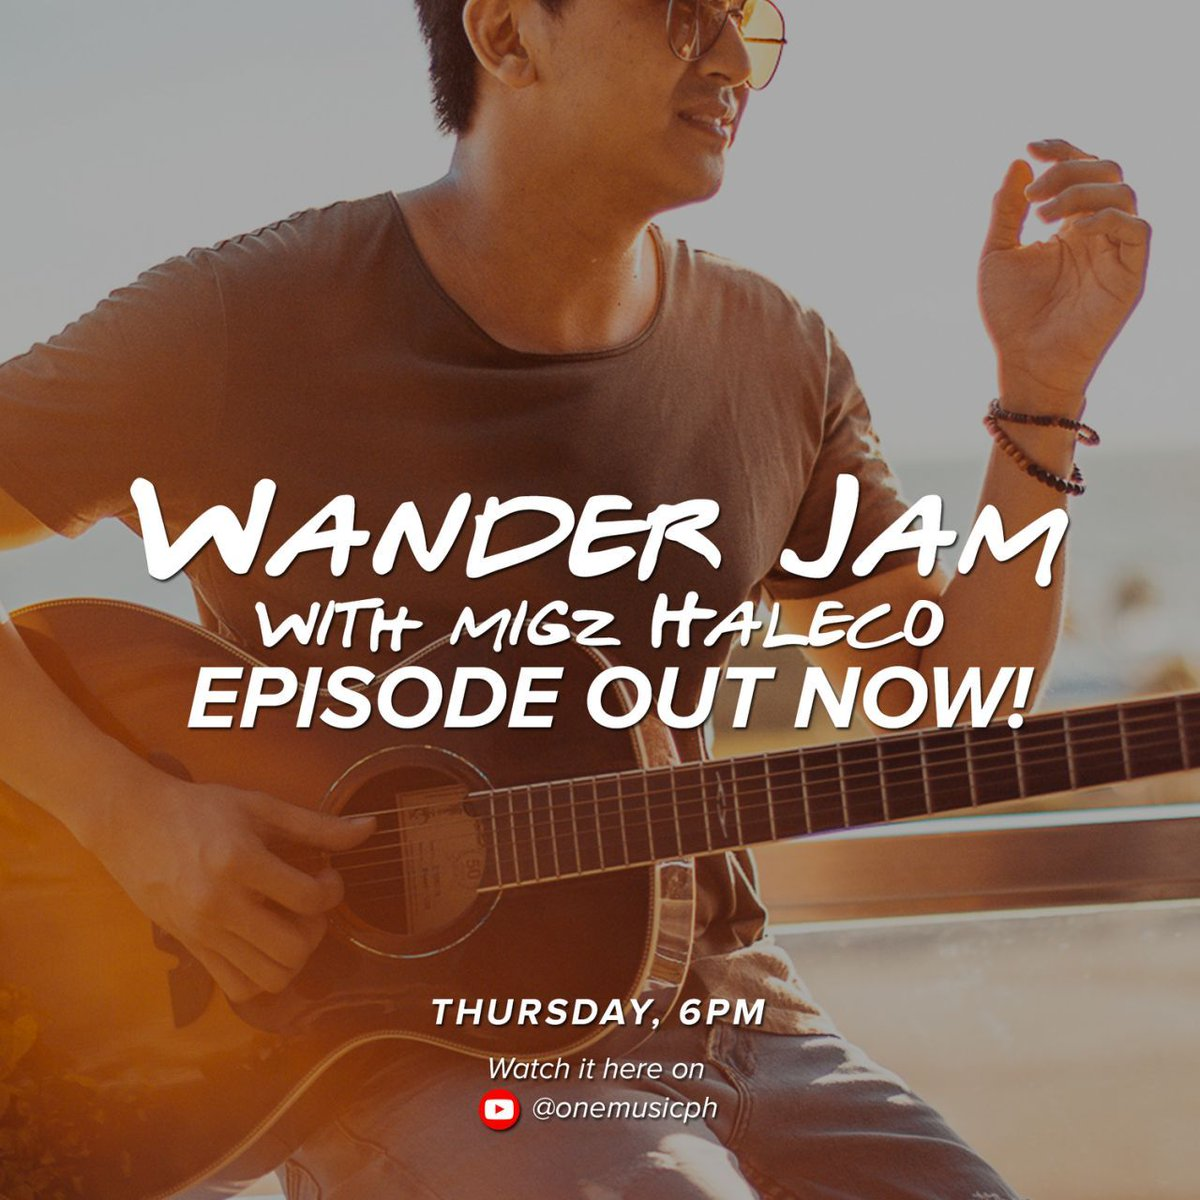 HER NAME IS YLONA GARCIA. Catch @ylona_garcia alongside @migzhaleco on another episode of #WanderJam right here: buff.ly/2ppqxd8